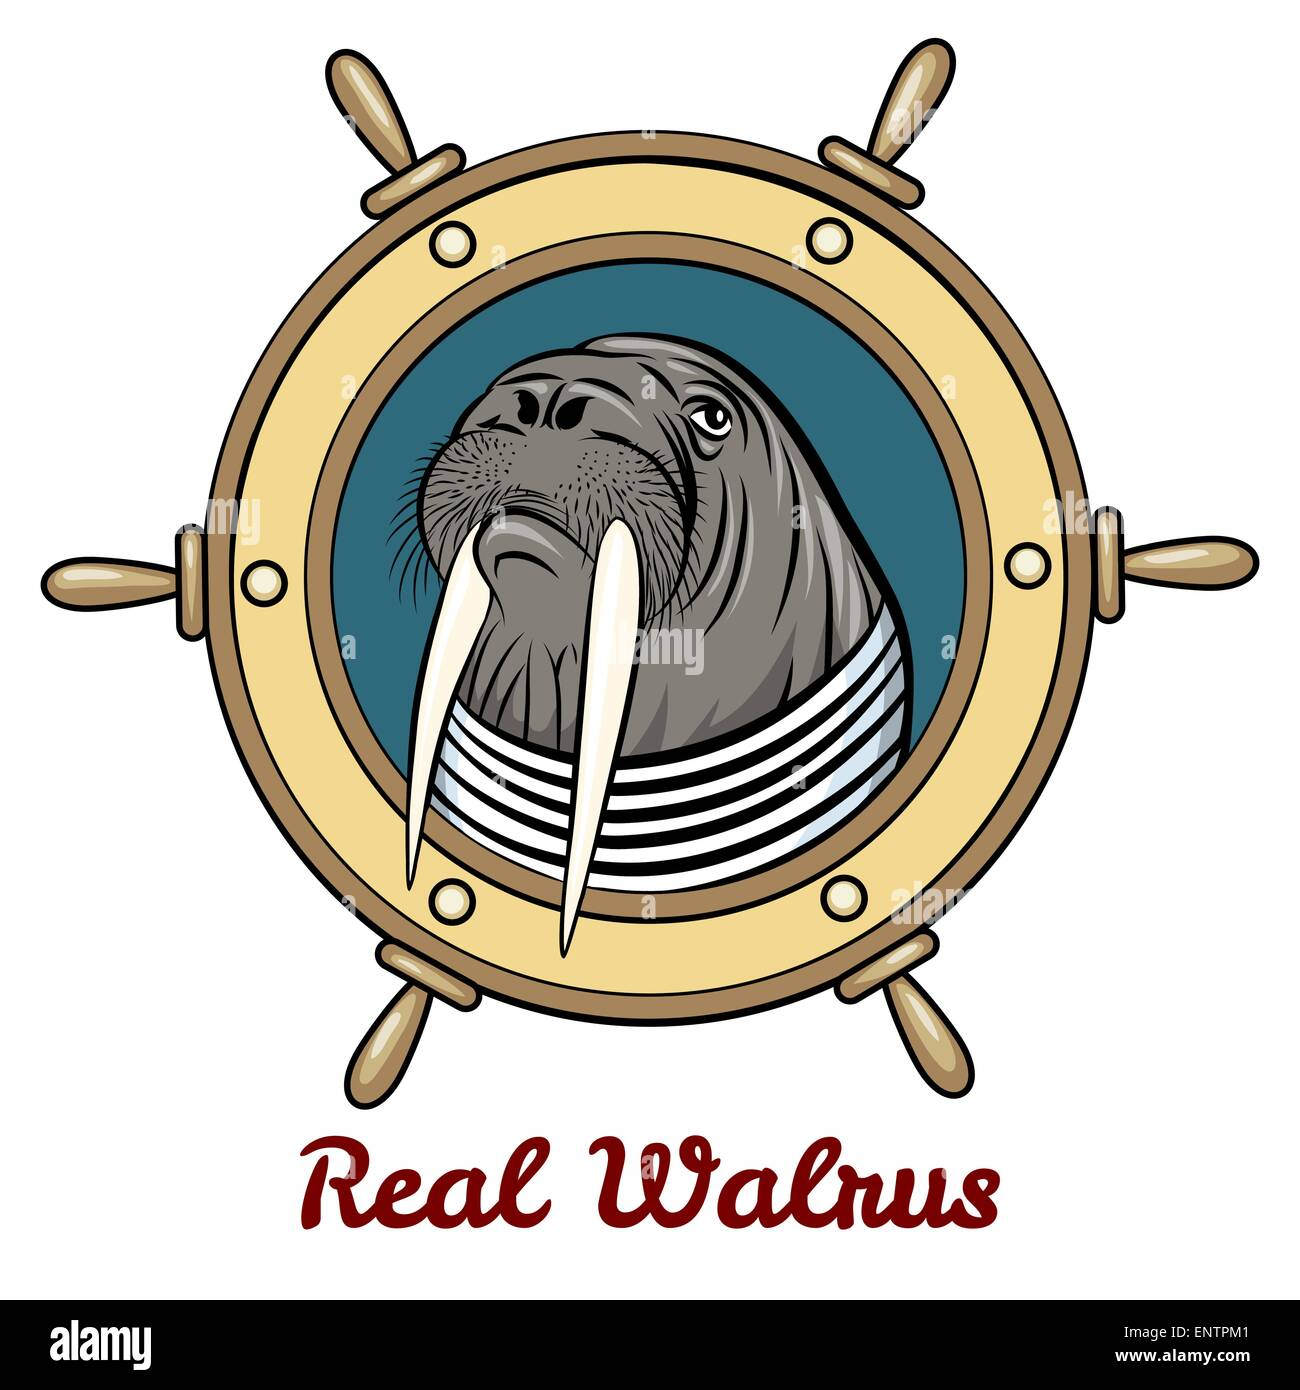 Walrus in seaman shirt against steering wheel drawn in cartoon style. Isolated on white background. Stock Vector